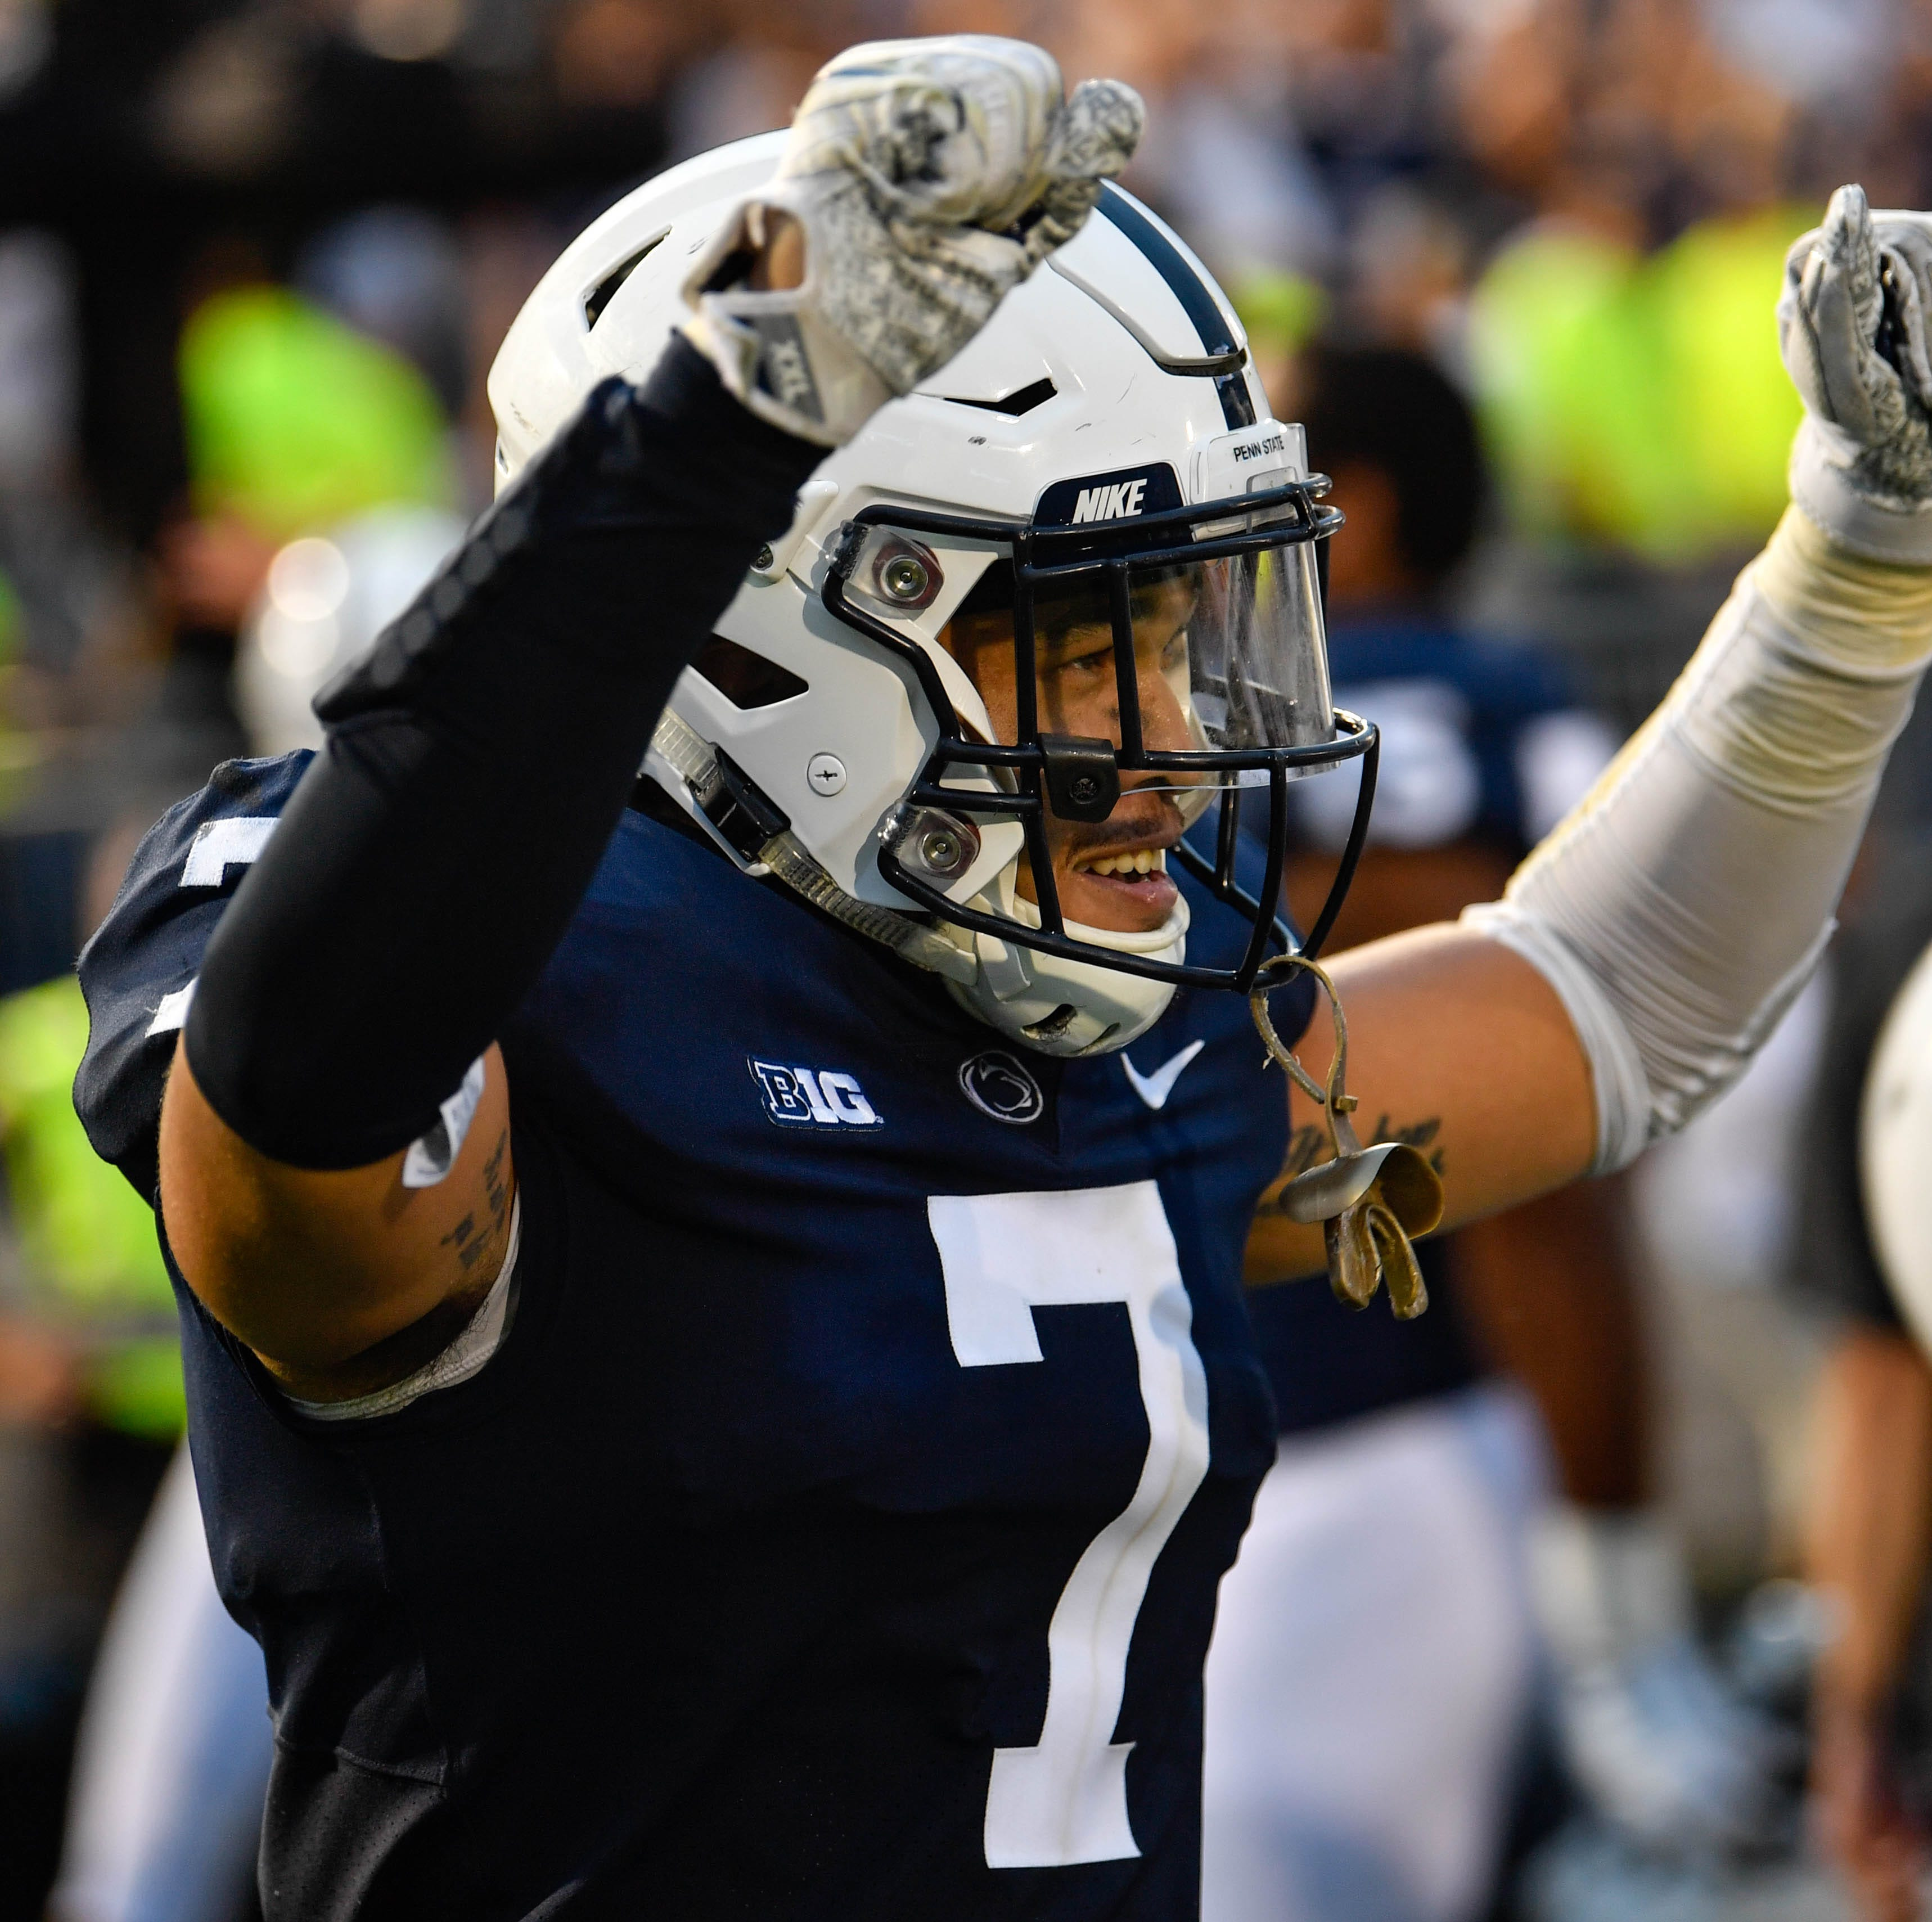 Penn State vs. Pitt: Trace McSorley and 4 other Lions must step up big at Heinz Field